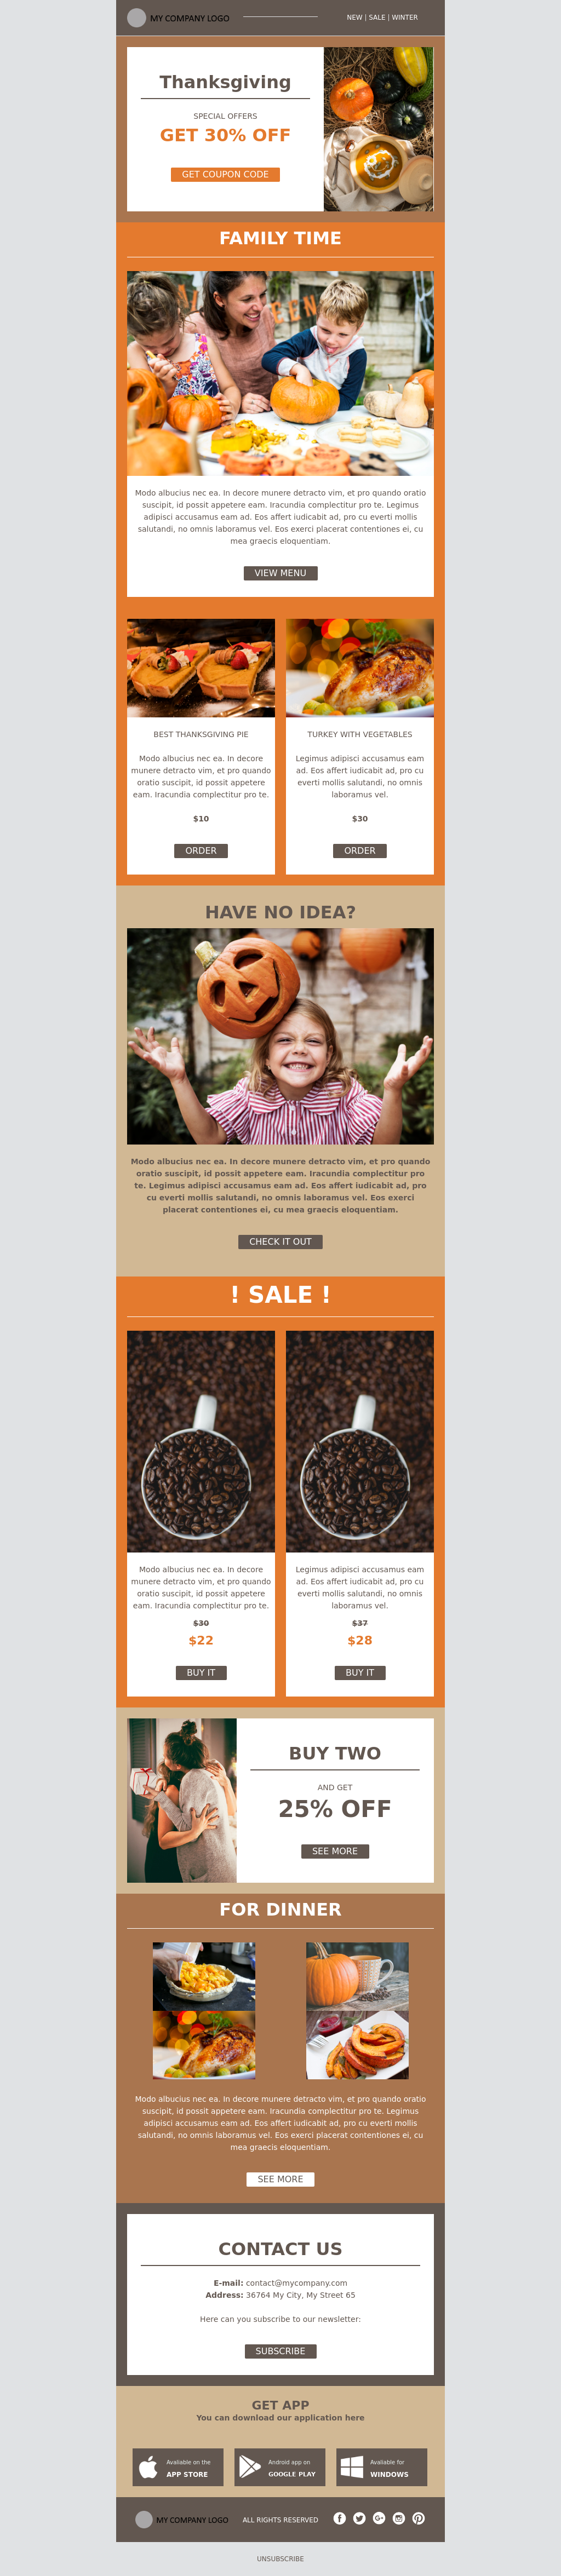 Thanksgiving Template Special Offer Promotional Template